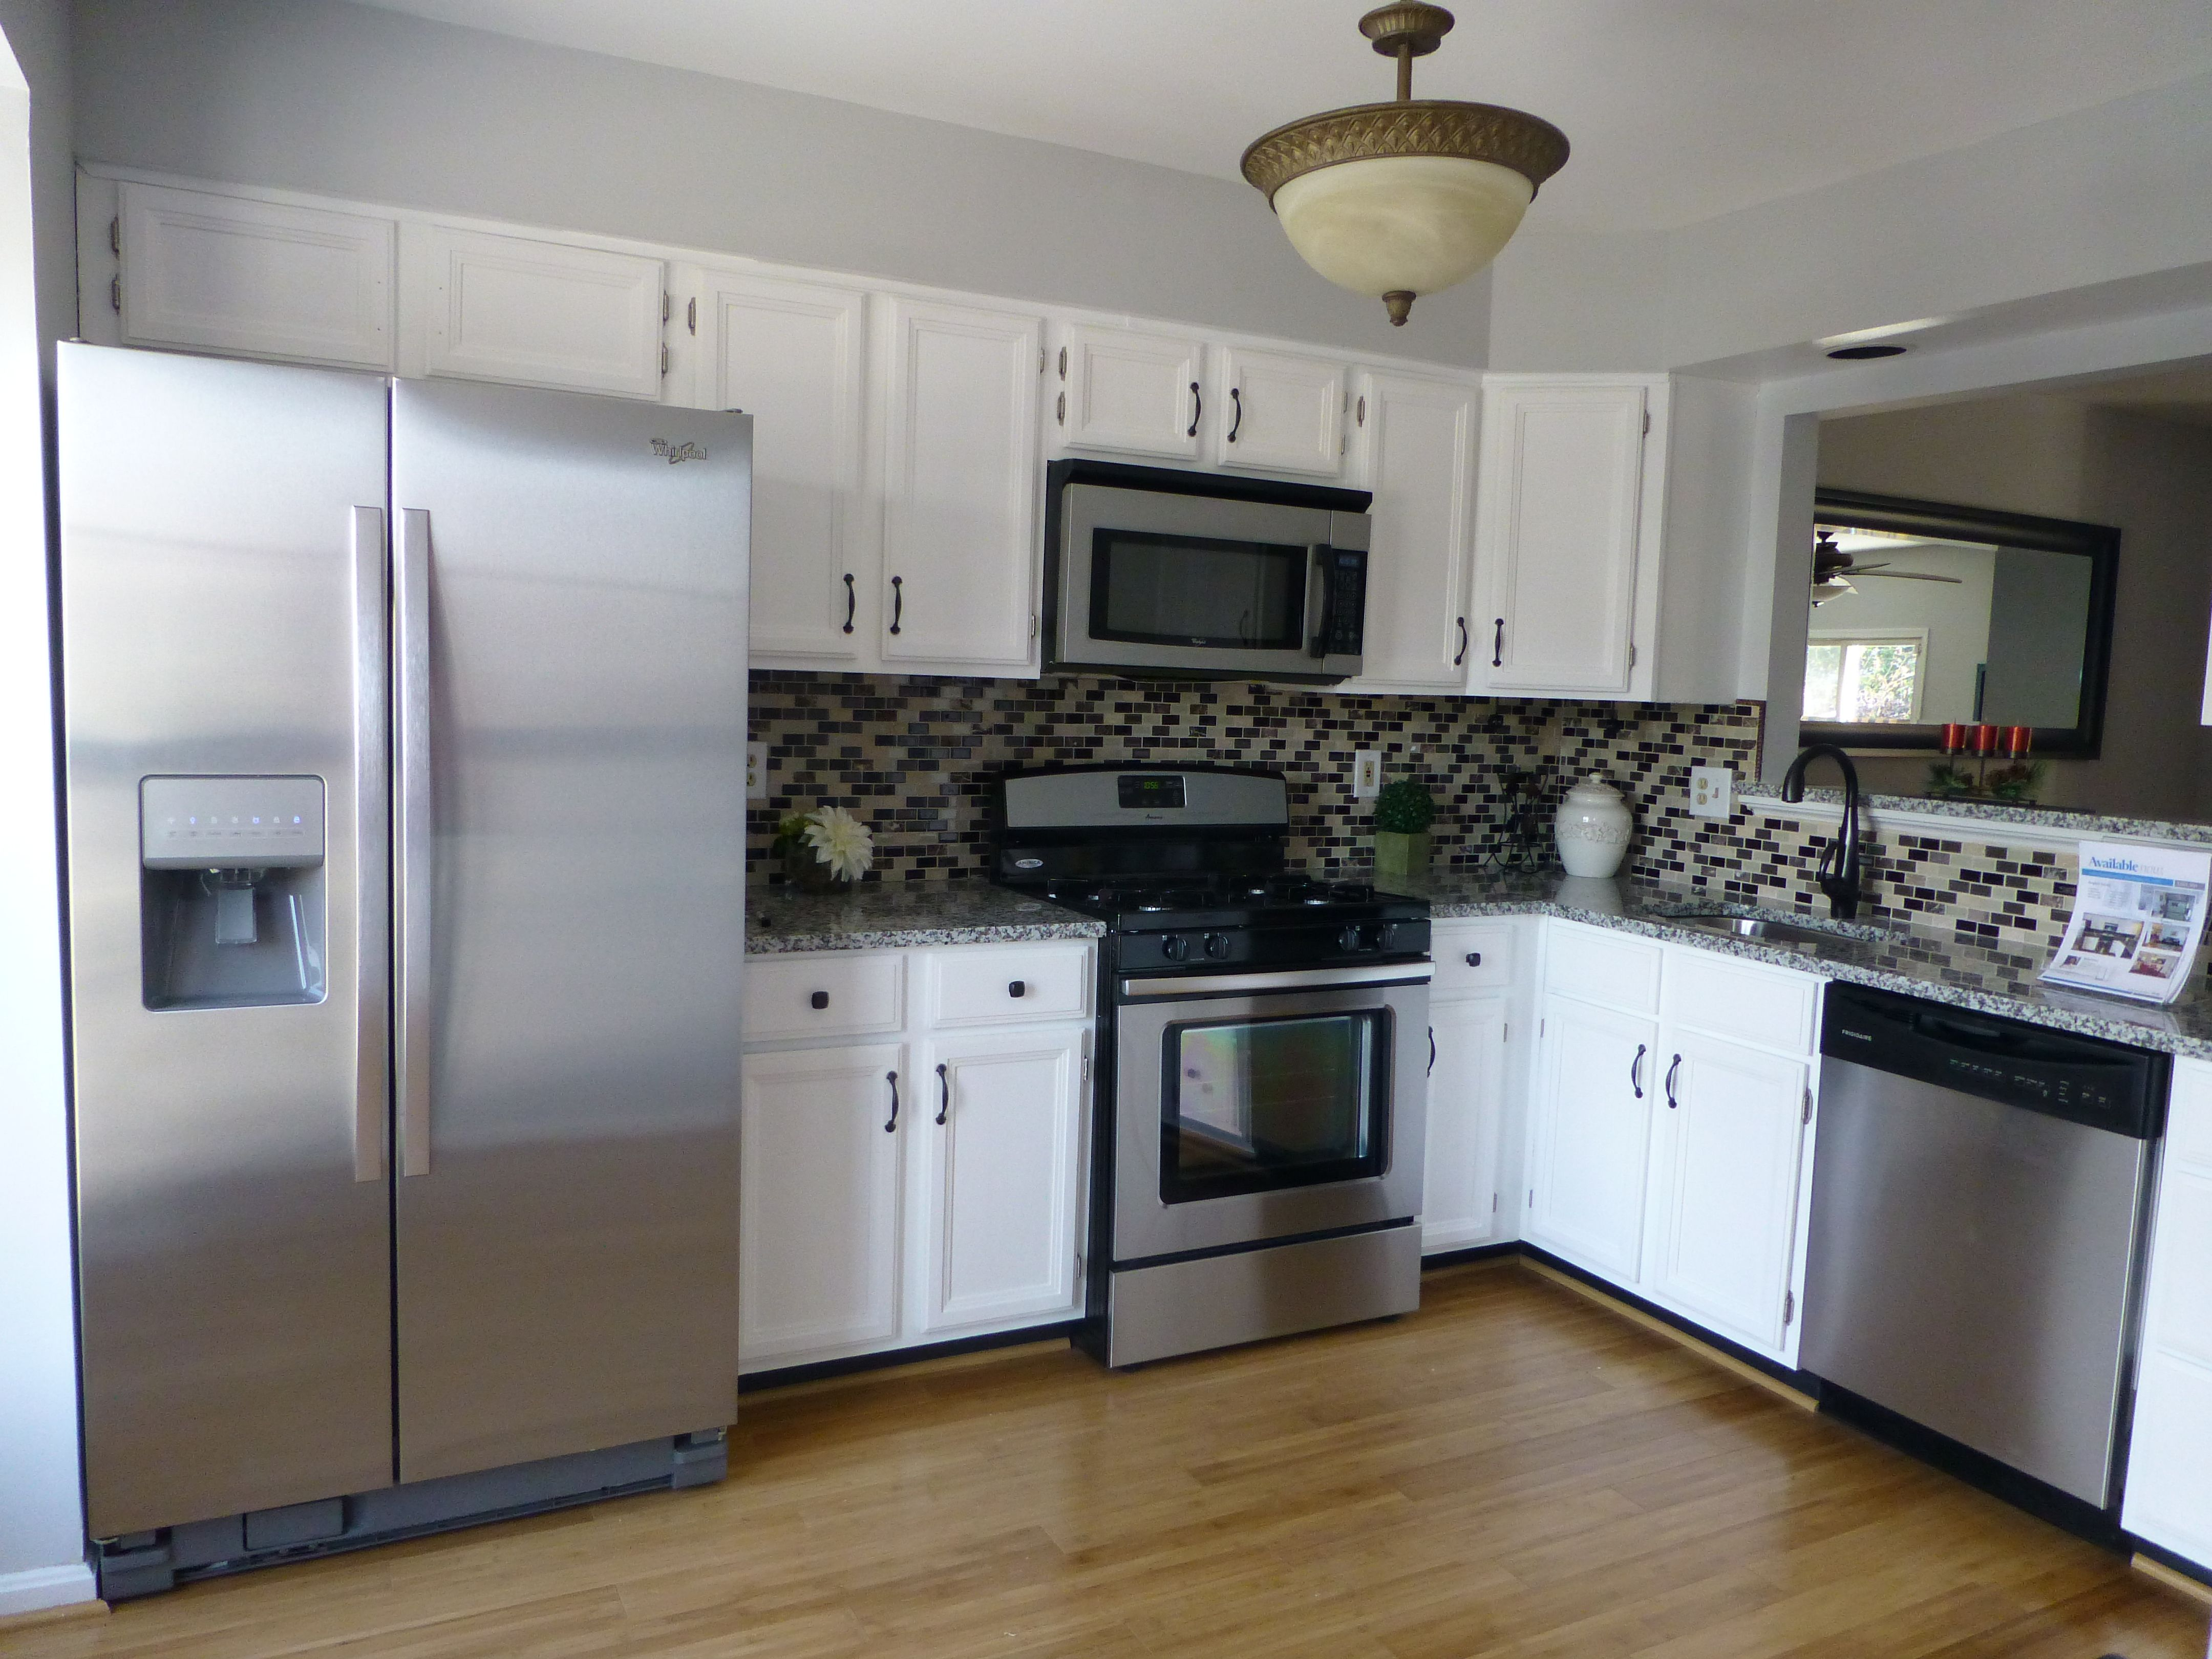 Gorgeous Updated Home For Sale in lake Ridge, VA 22192